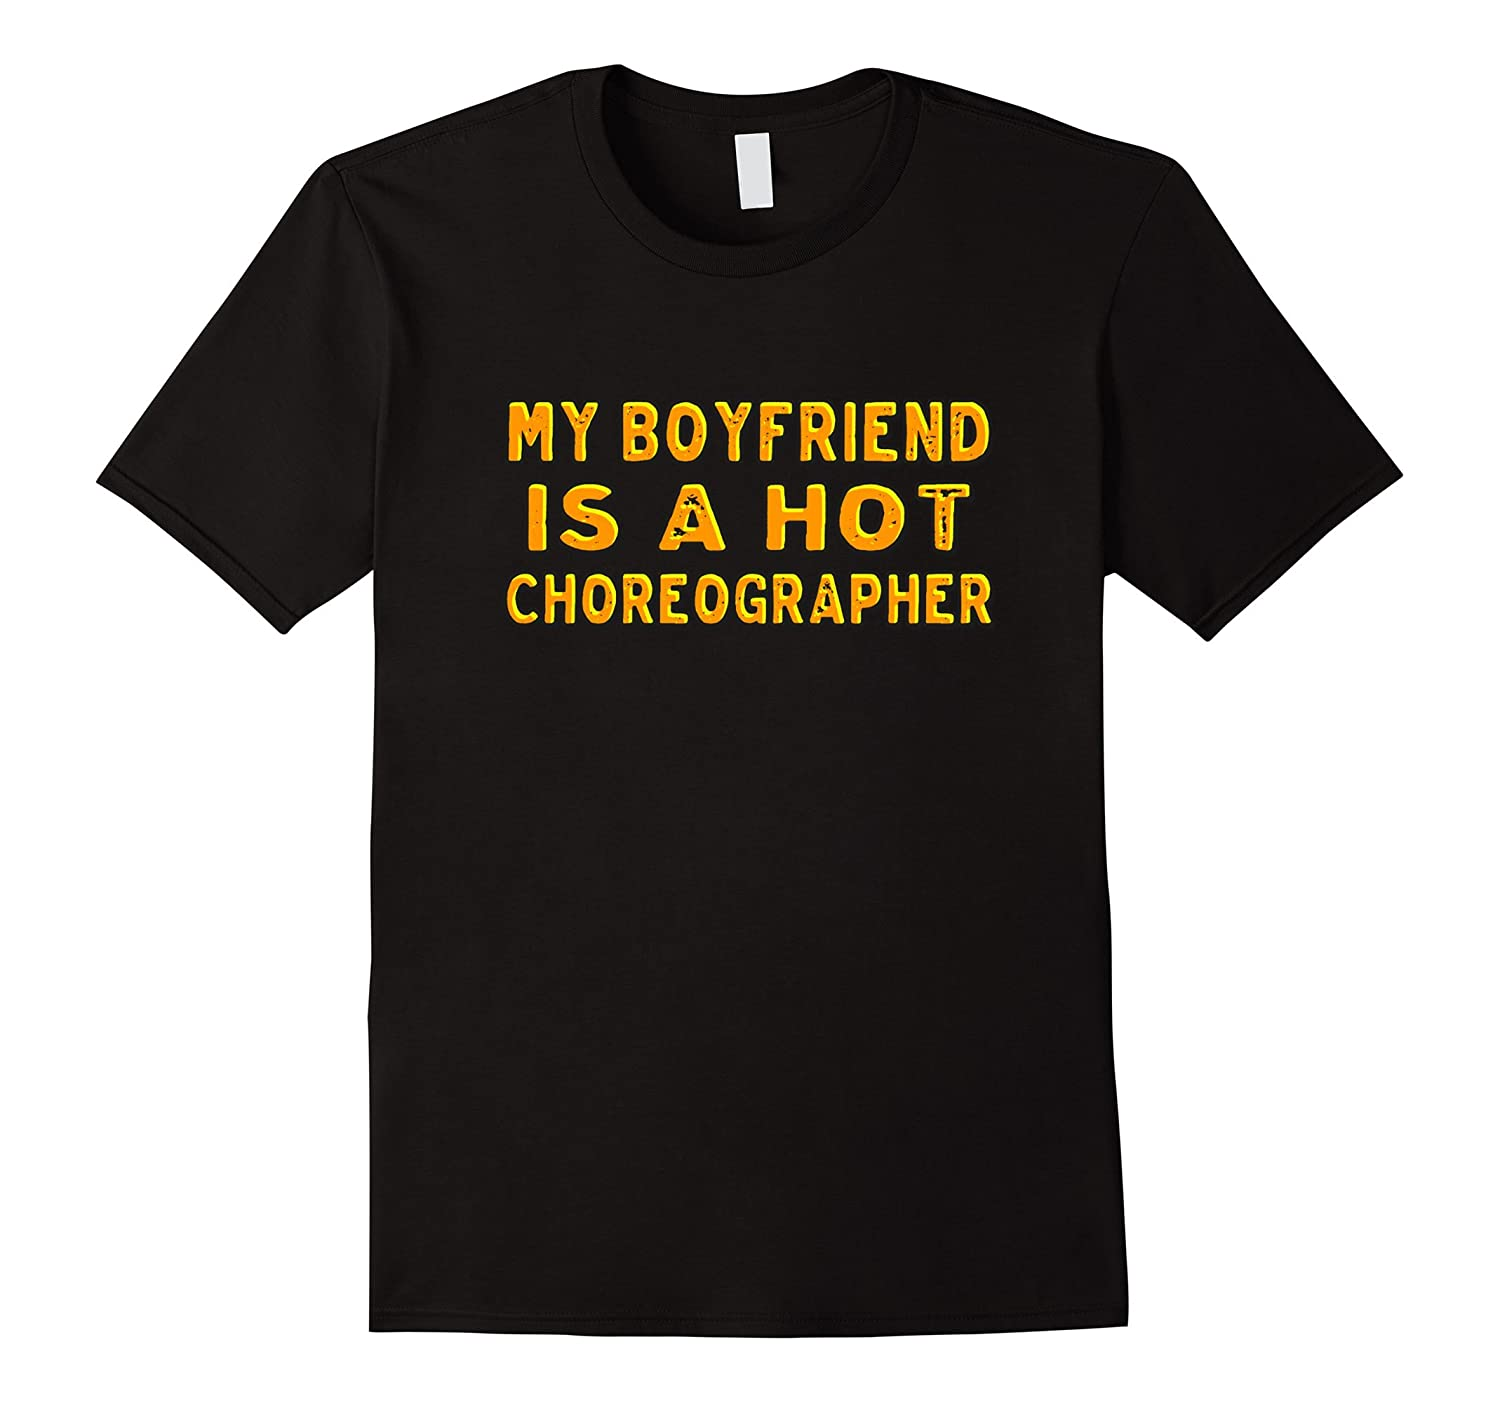 My boyfriend is a hot choreographer shirt-TJ